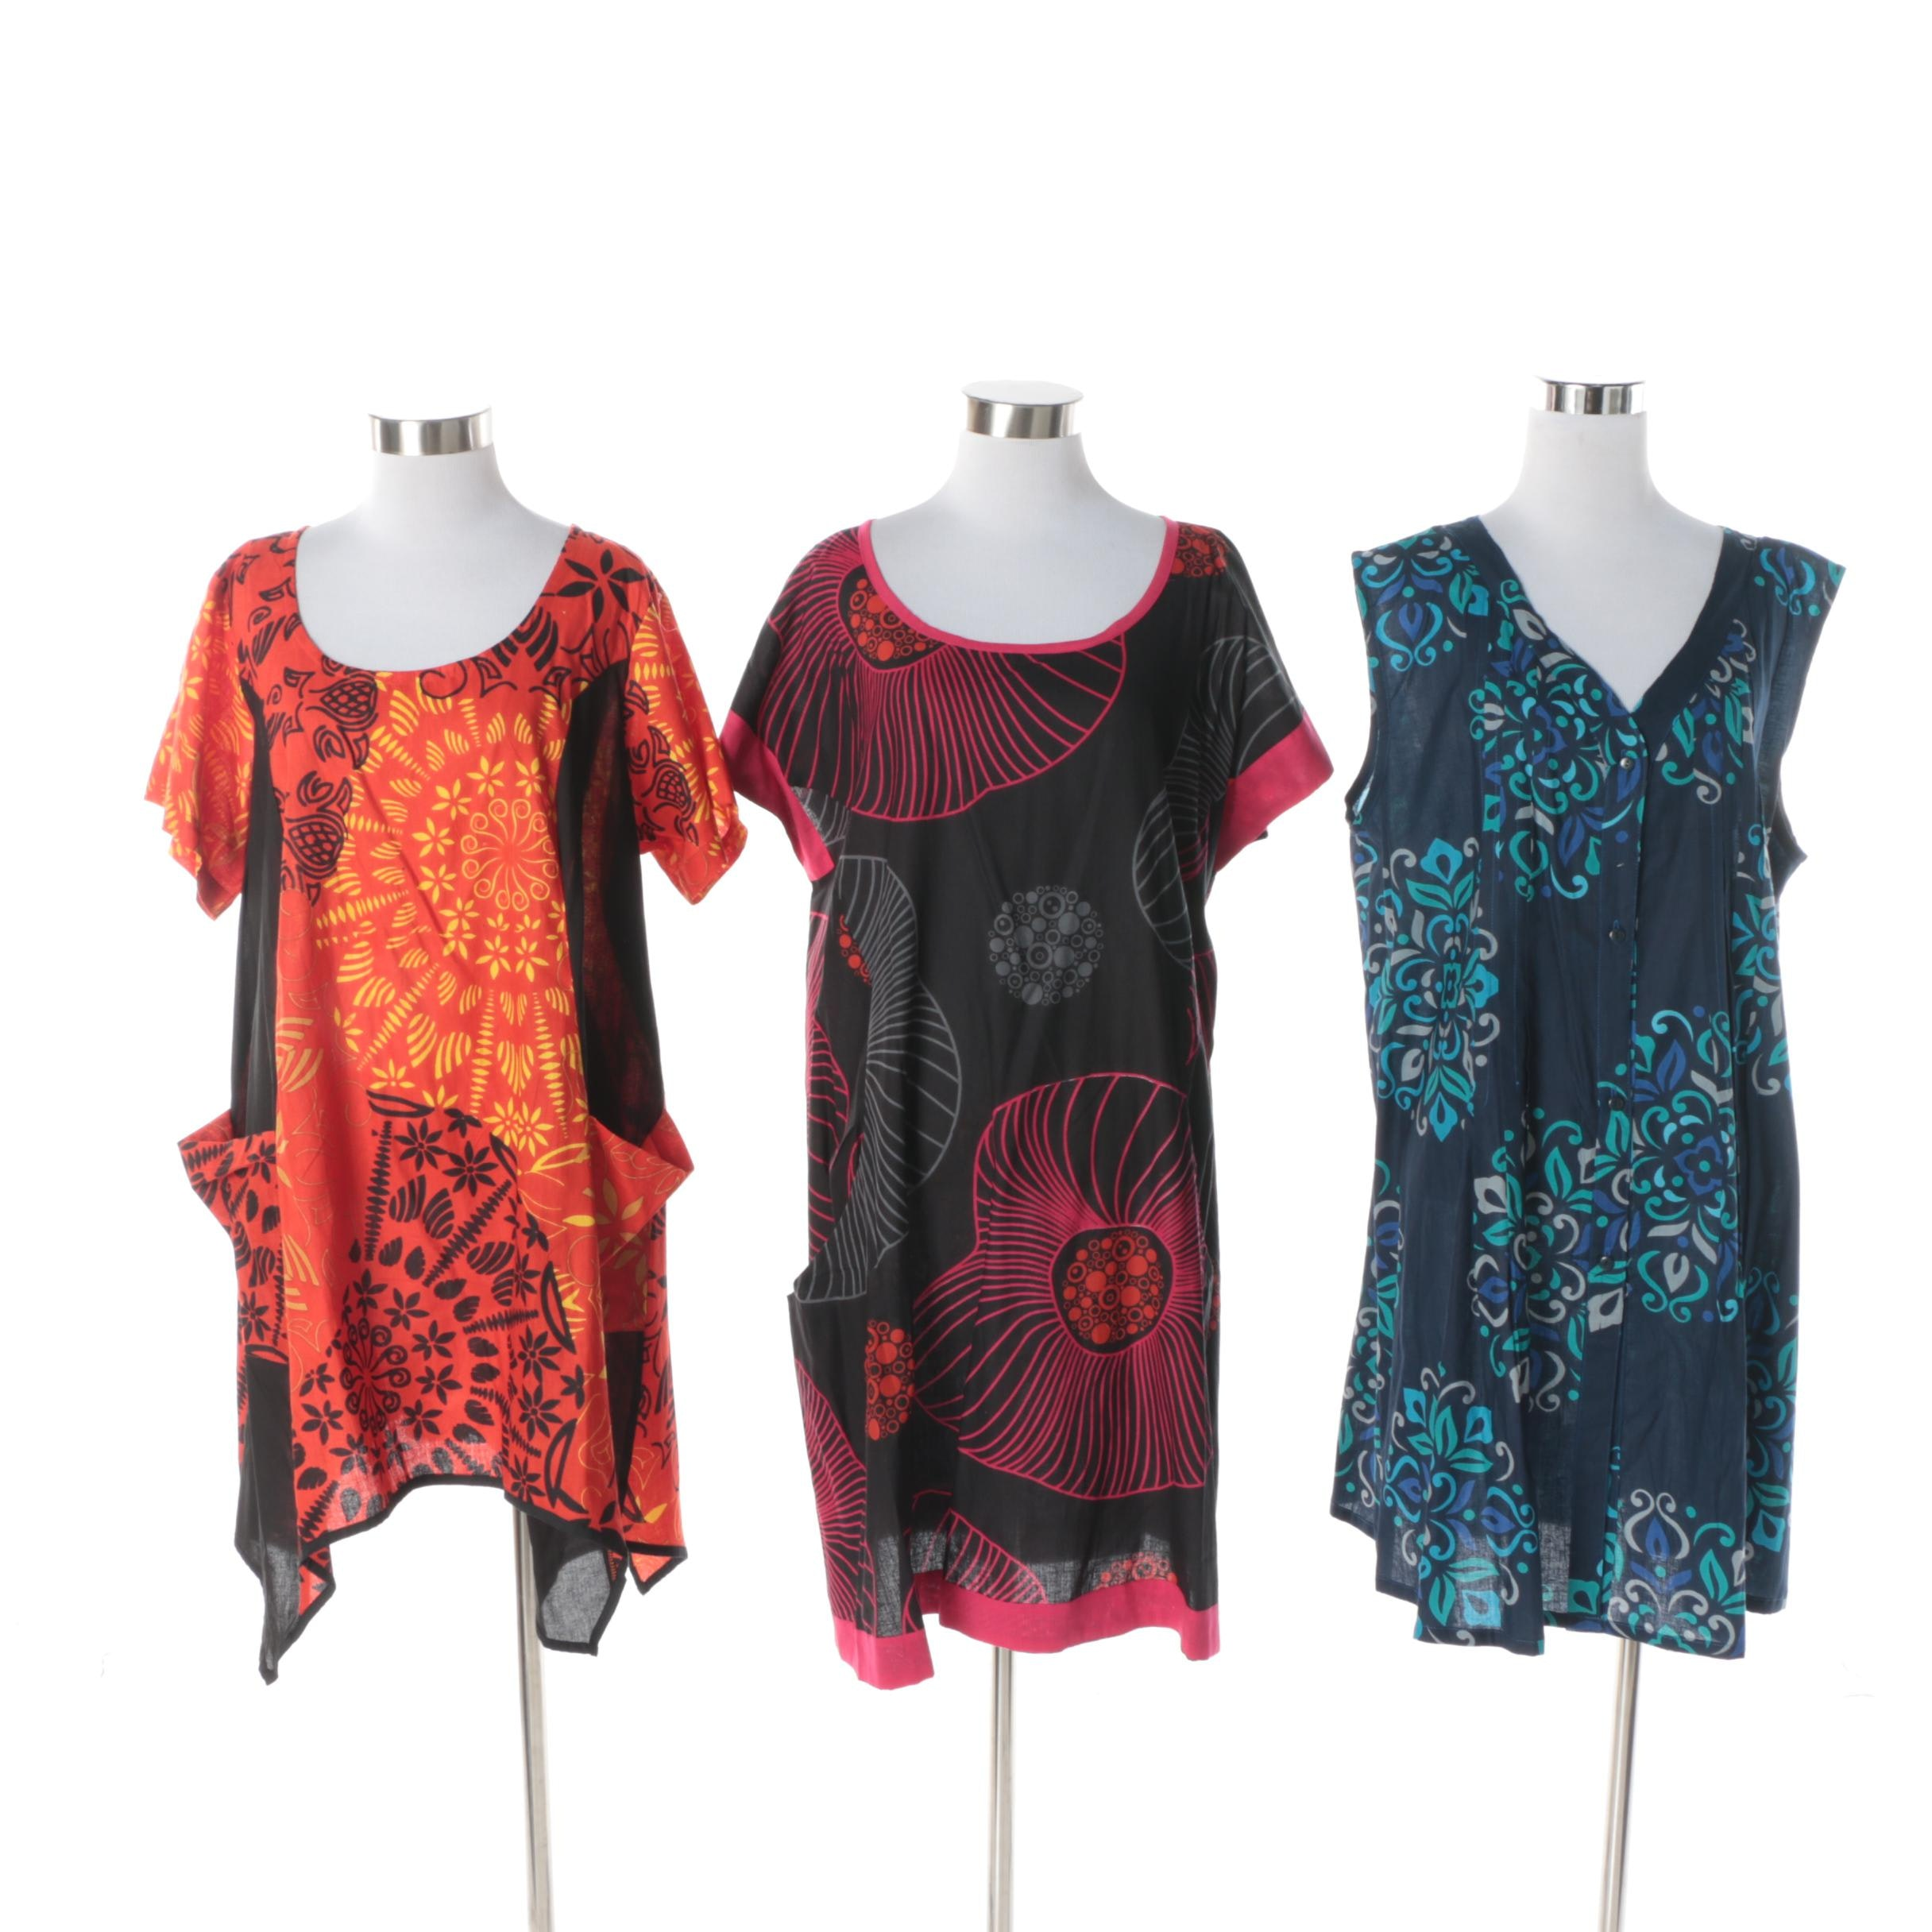 Aller Simplement Patterned Tunic Dresses